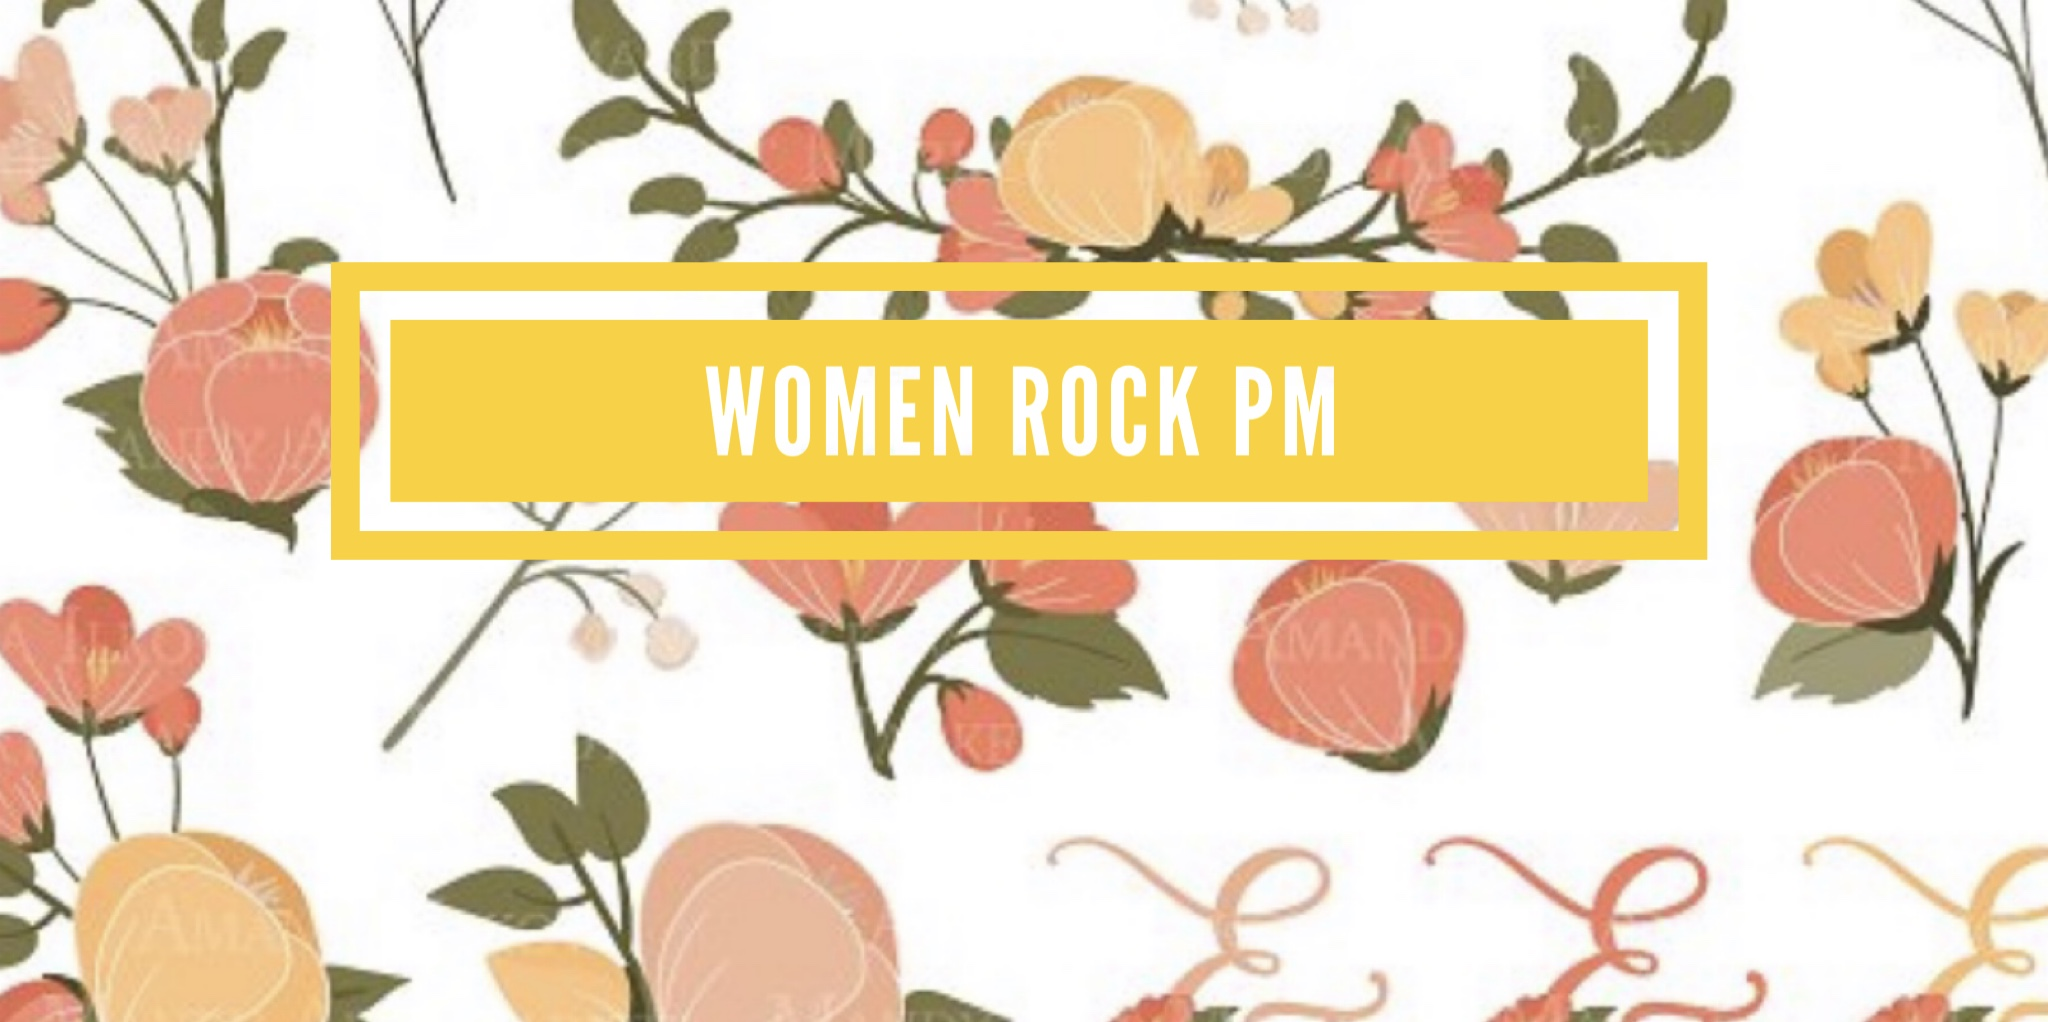 Women Rock PM